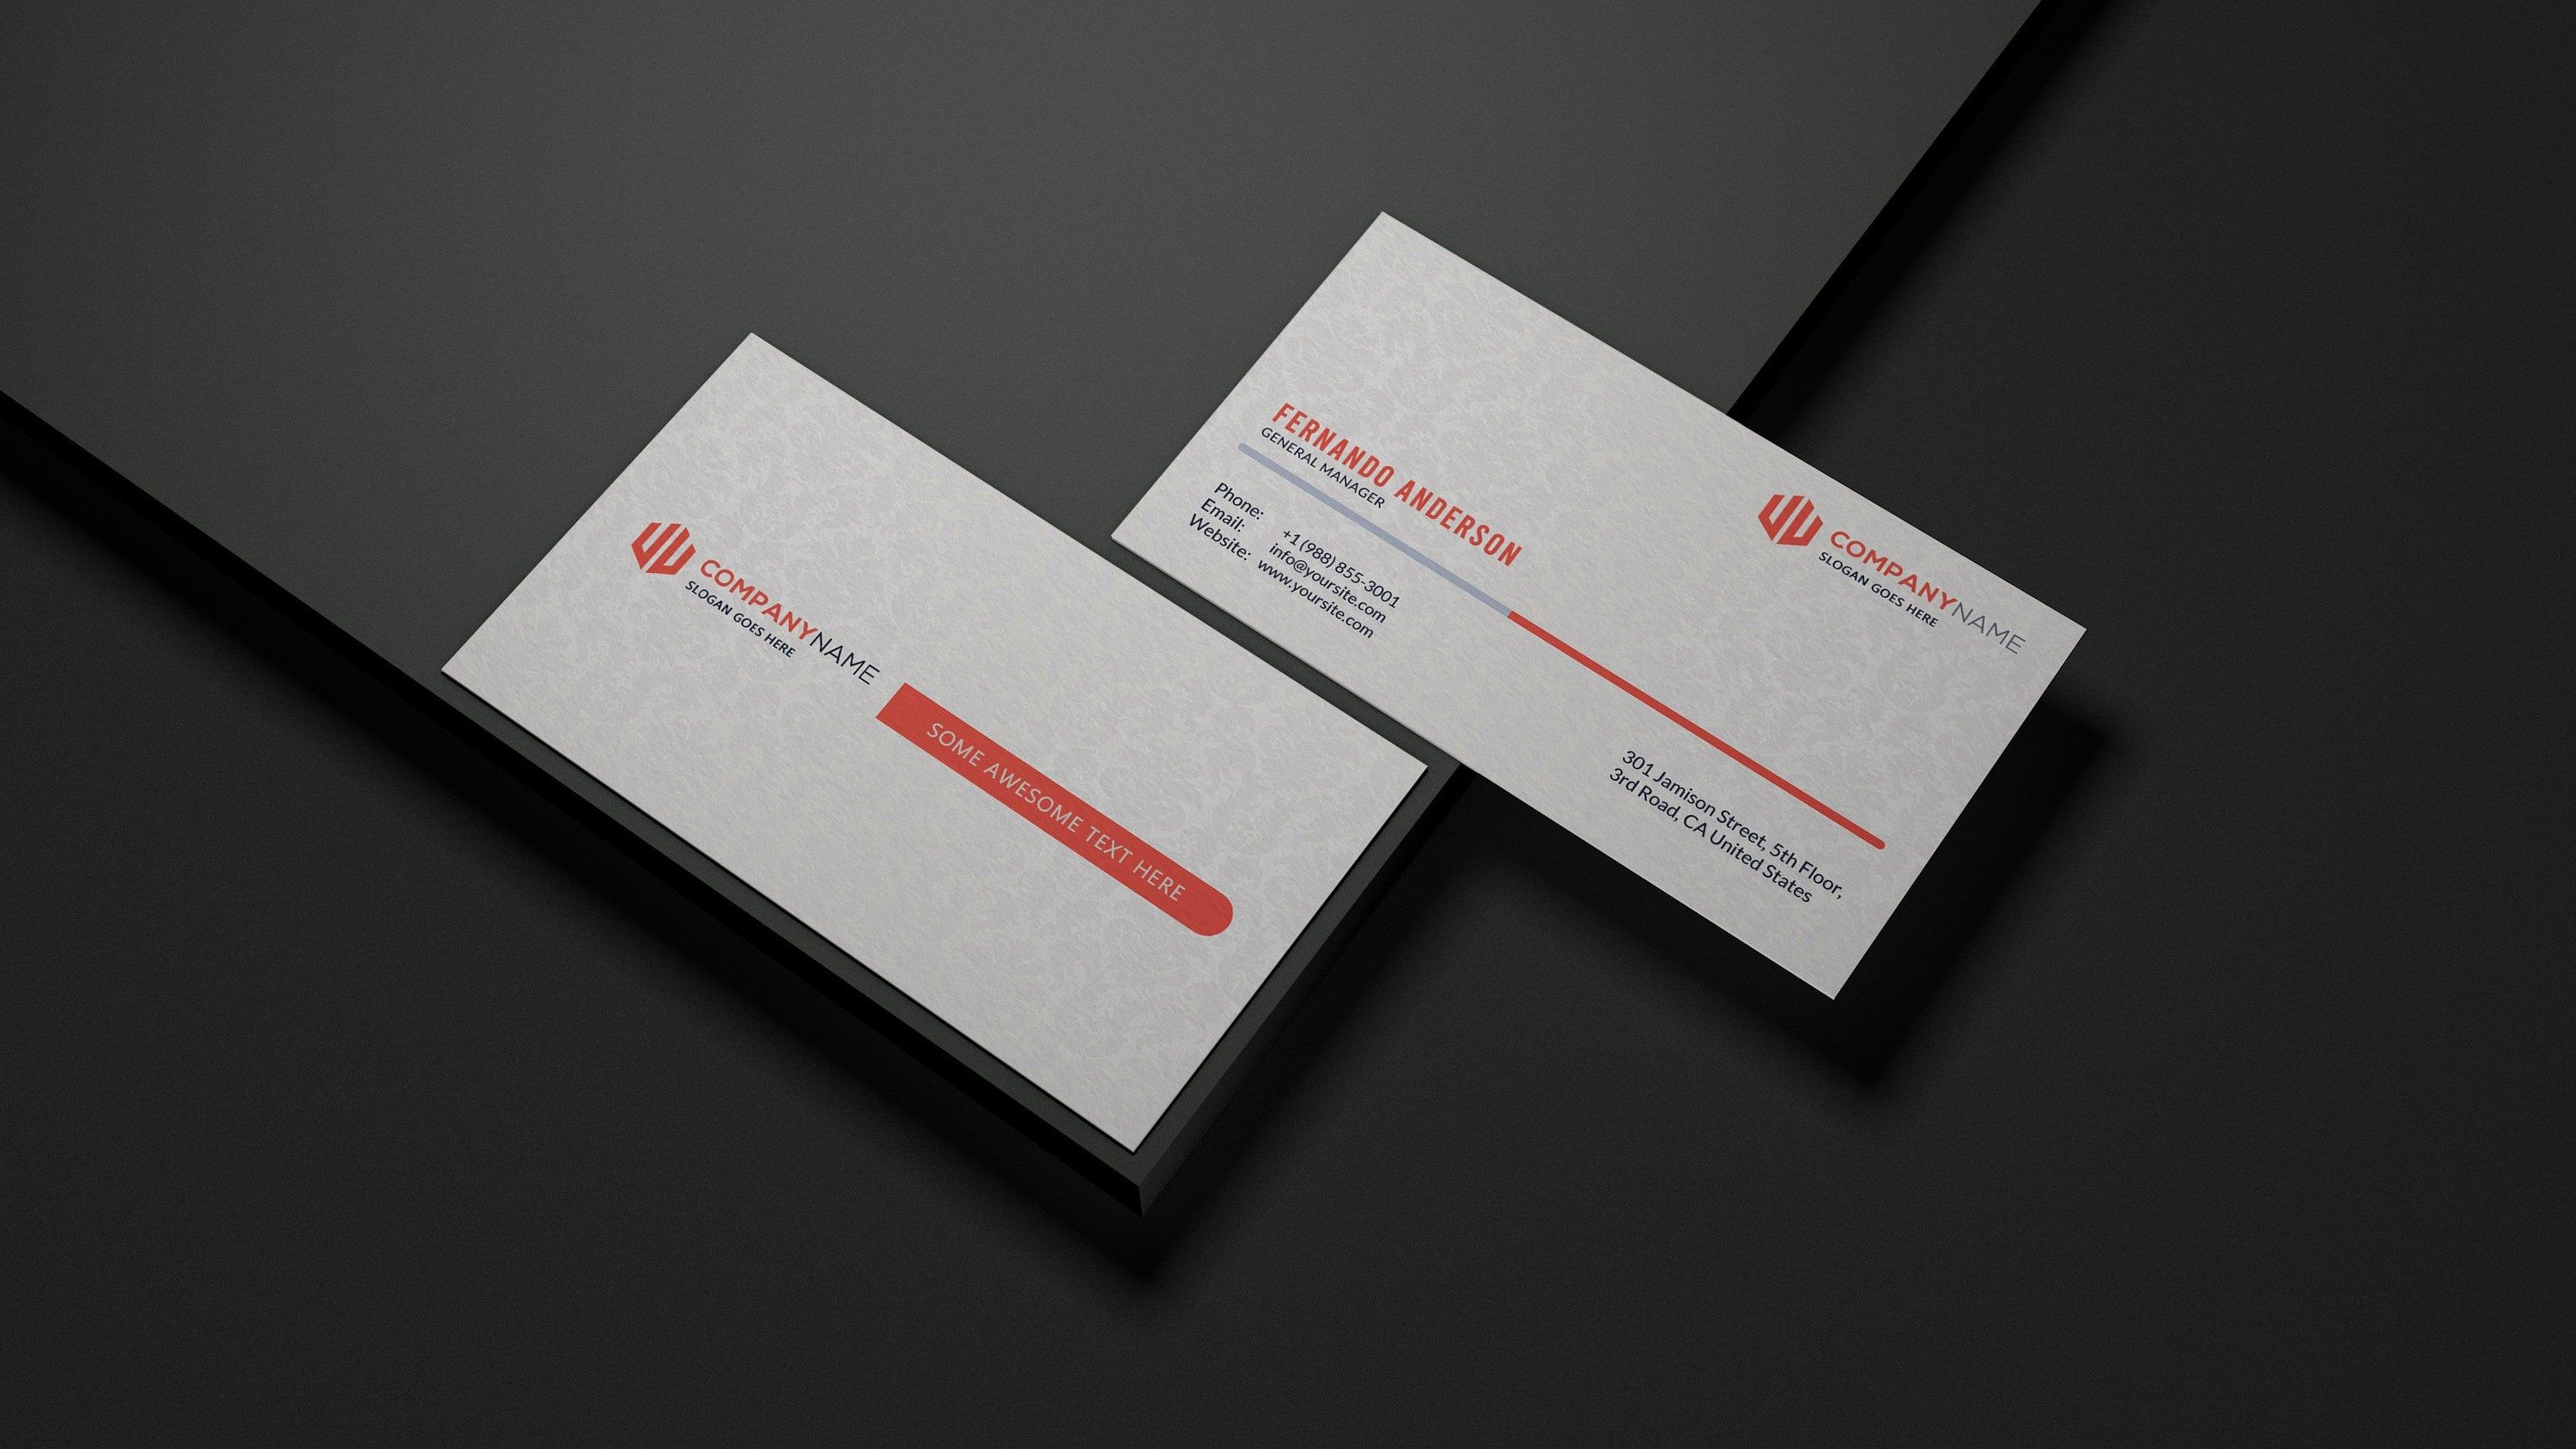 009 Staggering Vistaprint Busines Card Template Indesign High Def Full